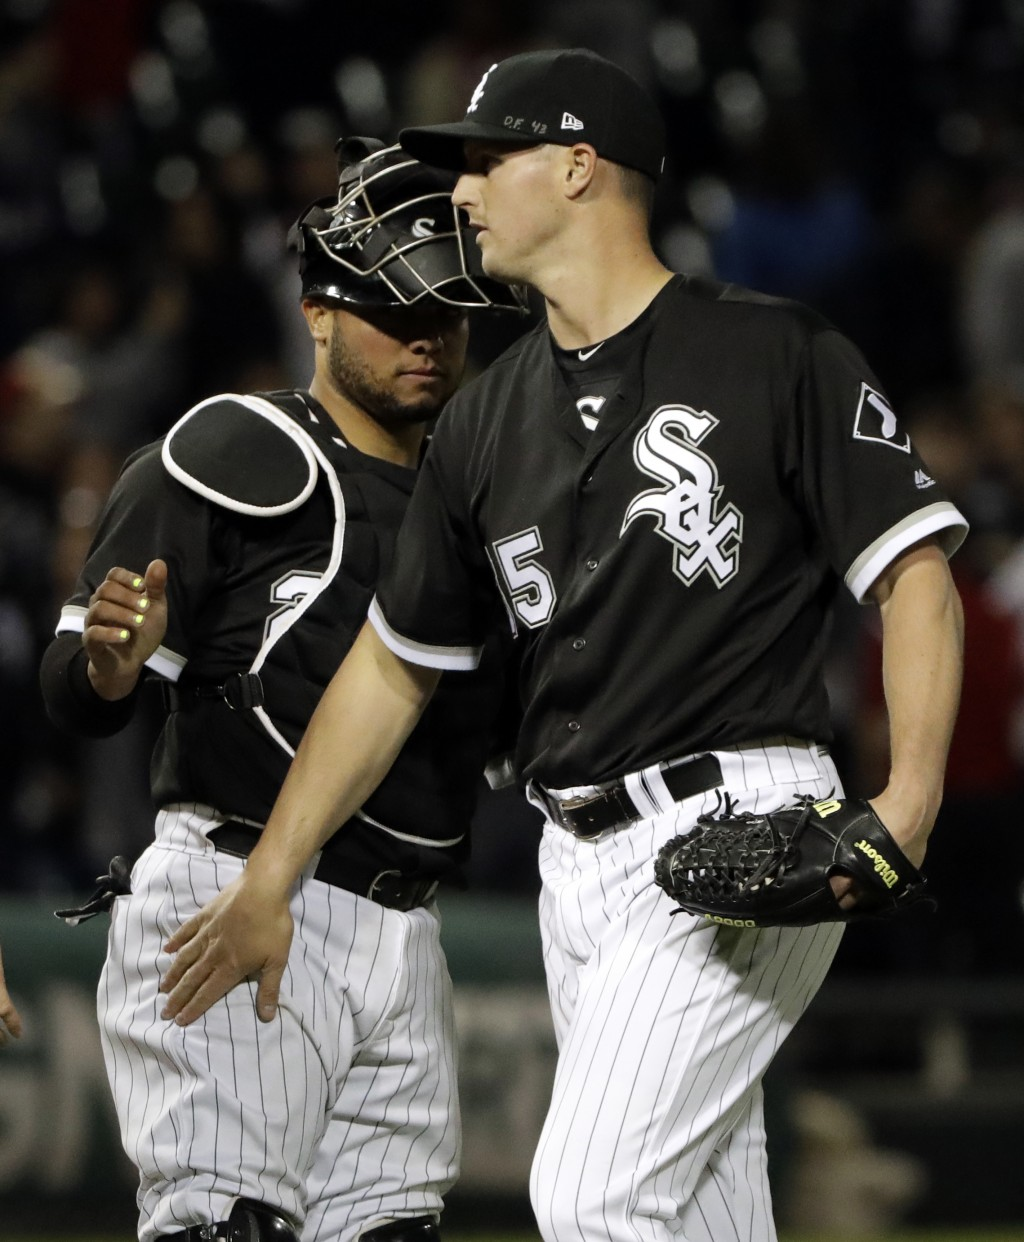 Chicago White Sox catcher Welington Castillo, left, celebrates with relief pitcher Nate Jones after the White Sox defeated the Texas Rangers 4-2 in a